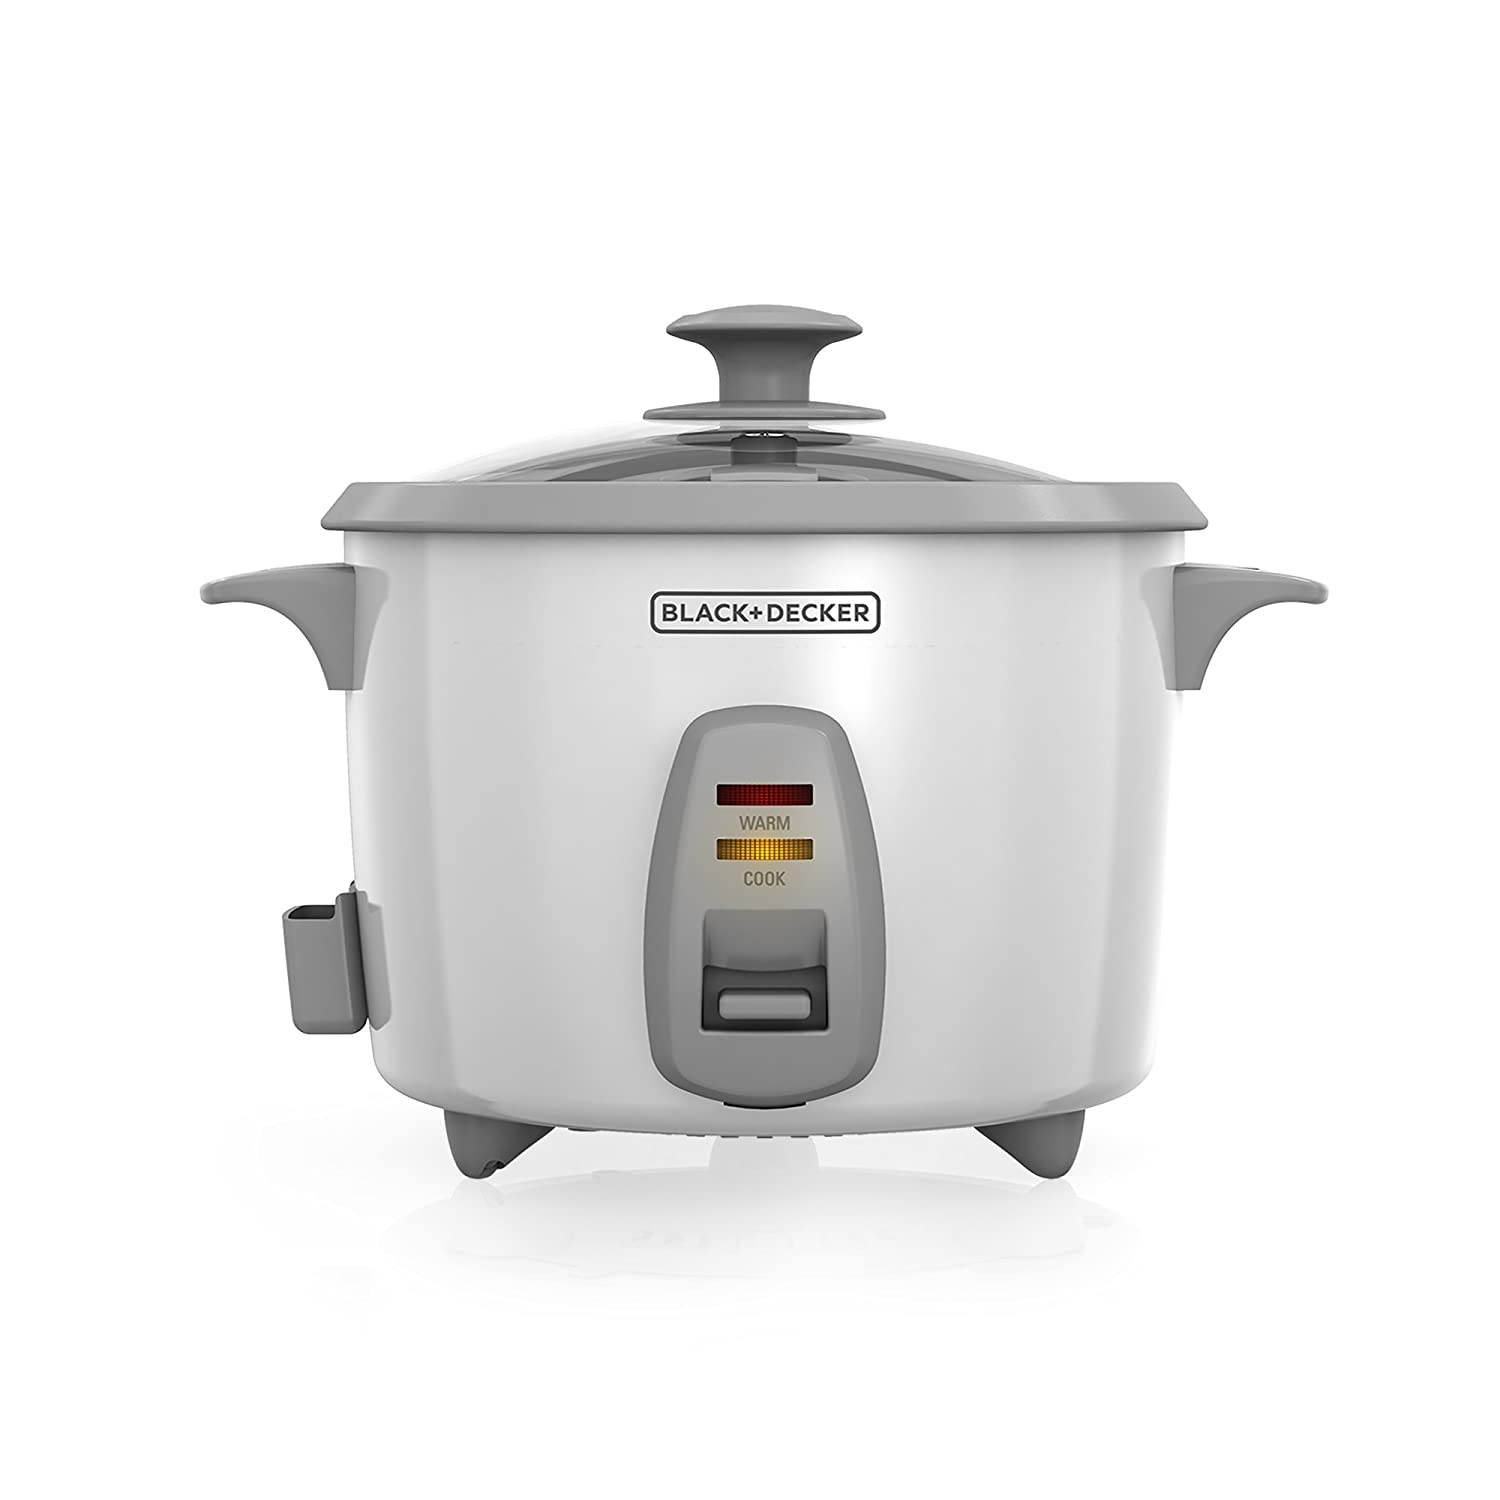 Amazon.com: BLACK+DECKER RC436 7-Cup Dry/16-cup Cooked Rice Cooker, White:  Black And Decker Rice Cooker Plus: Kitchen & Dining